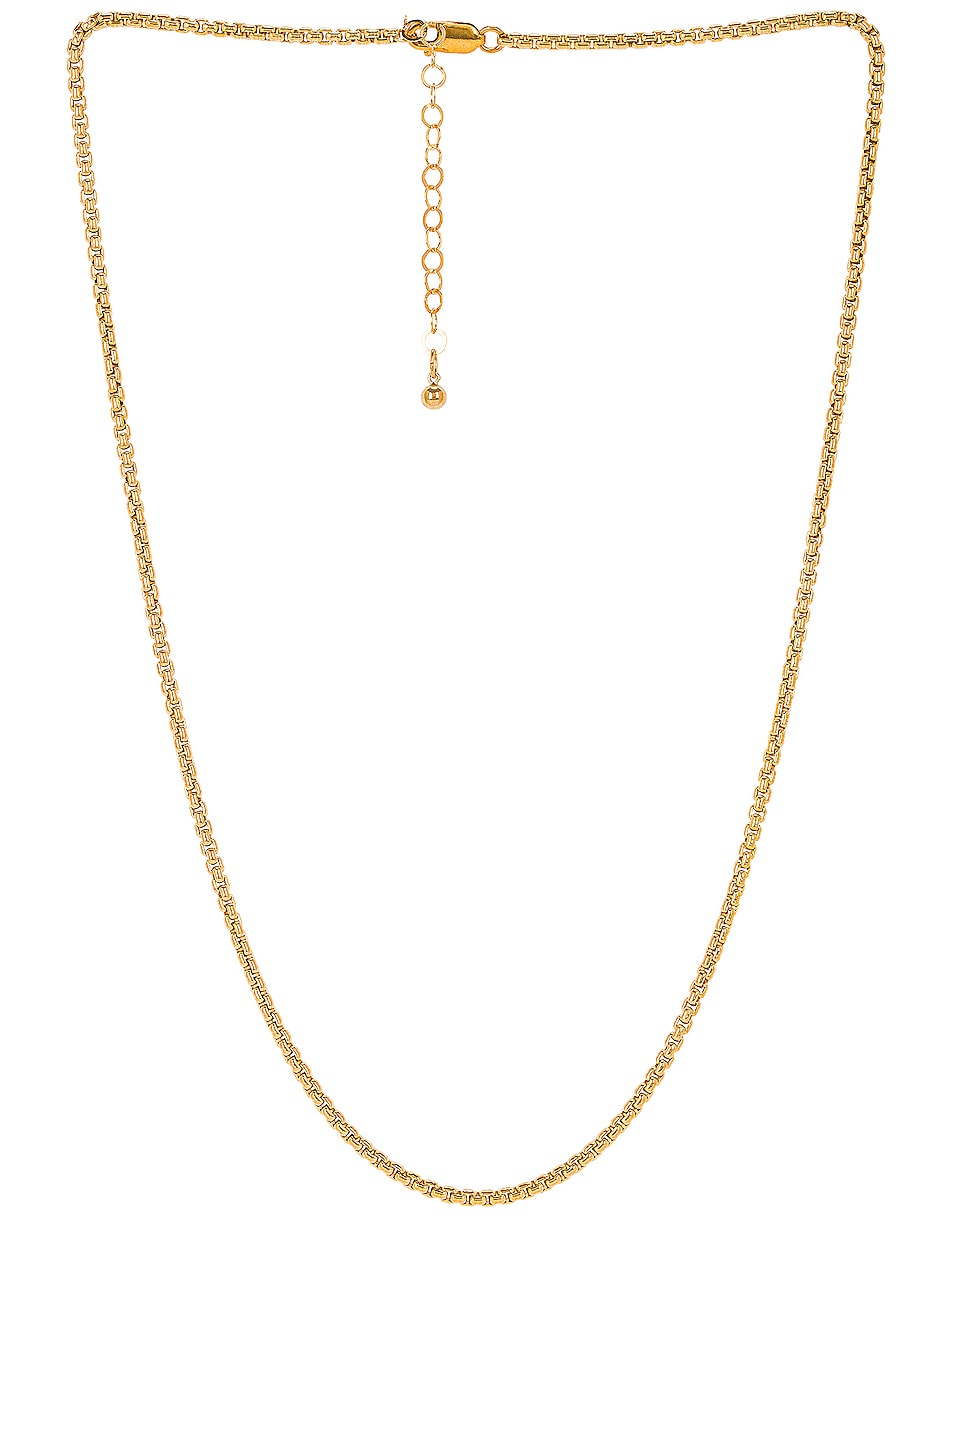 Image 1 of Jordan Road Jewelry Teagan Necklace in Gold